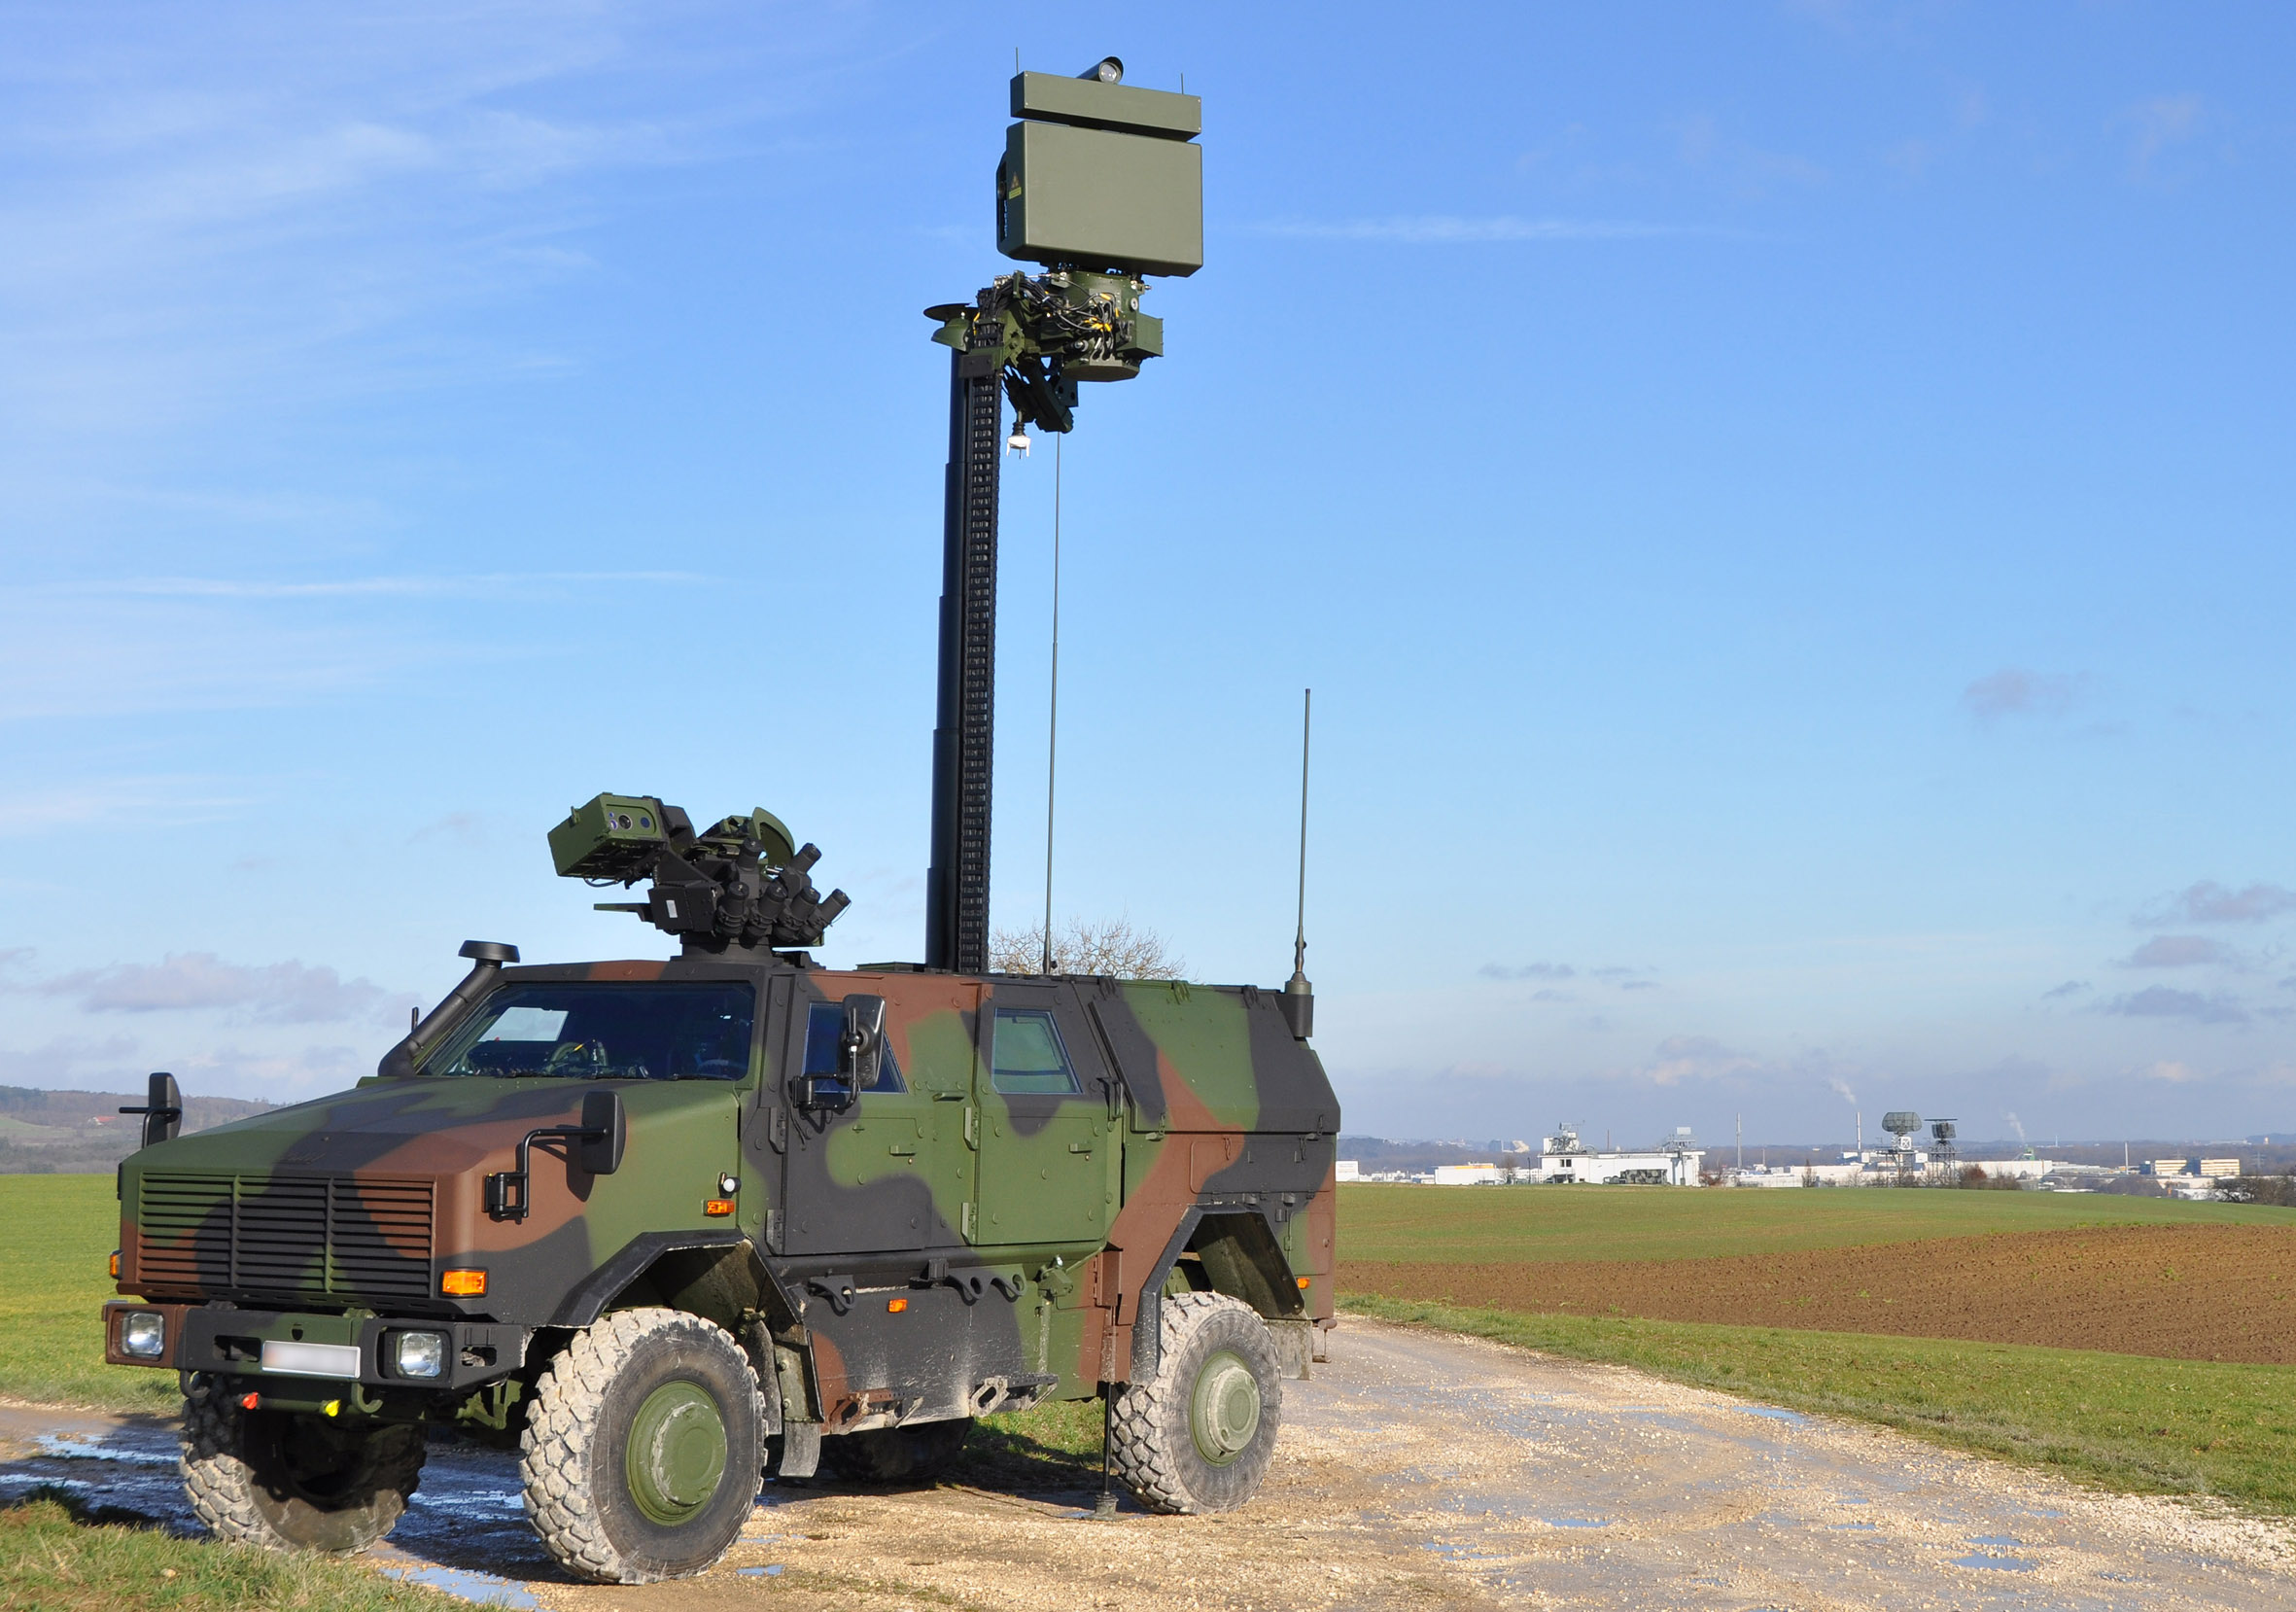 Cassidian unveils new ground surveillance radar